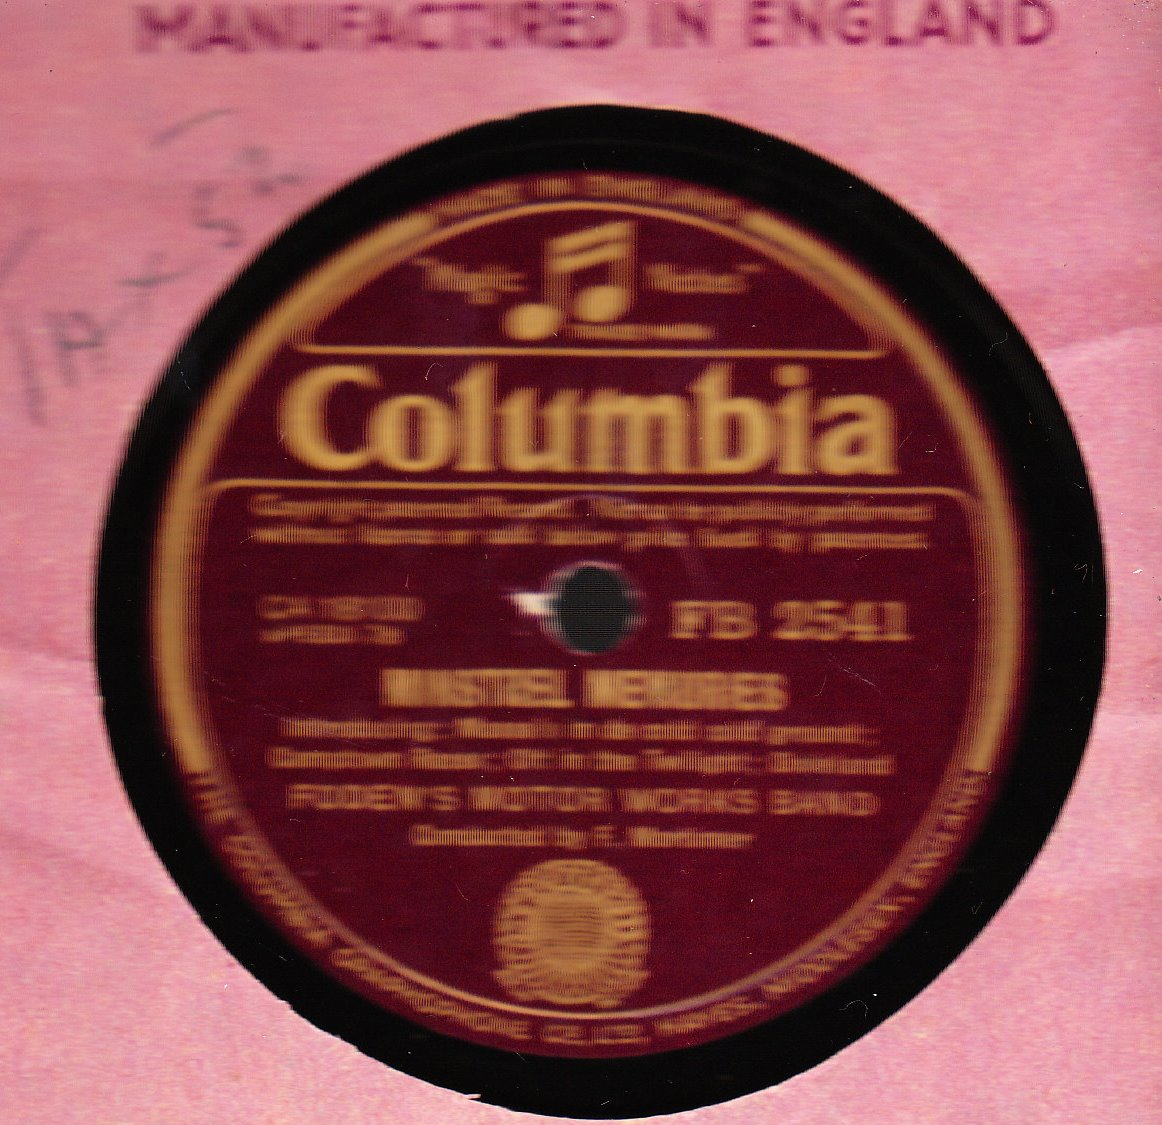 Foden's Motor Works Band - John Peel - Columbia FB 2541